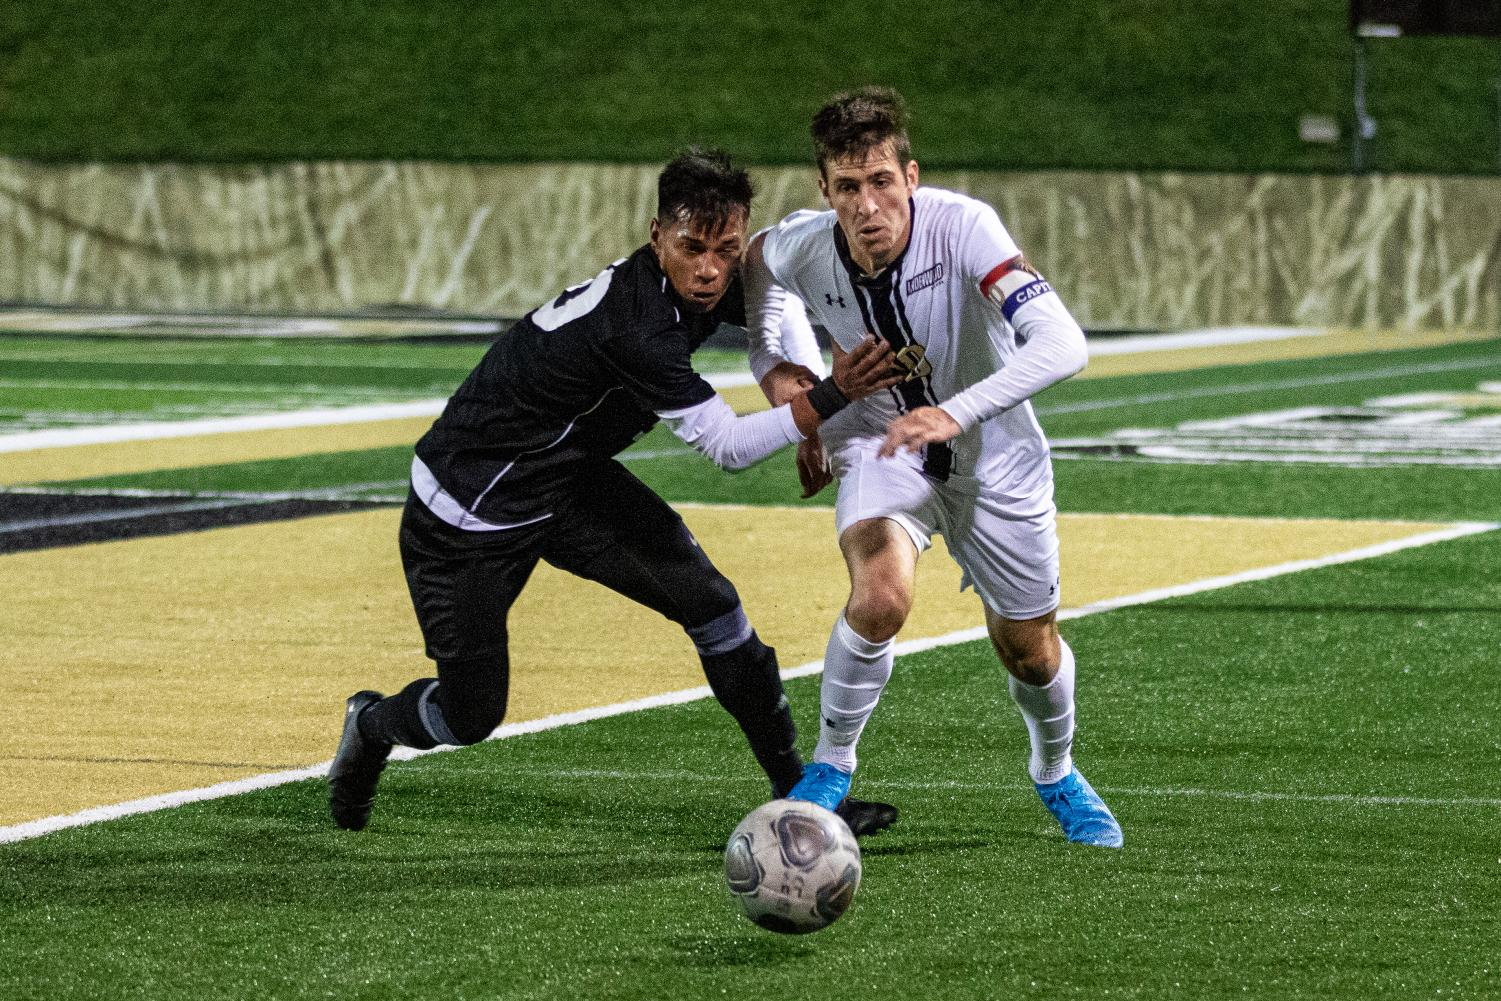 Lion's junior Leon Silva (white) got tackled by Hector Marin (black) The Lions draw 0-0 against Drury Panthers. Photo by James Tananan